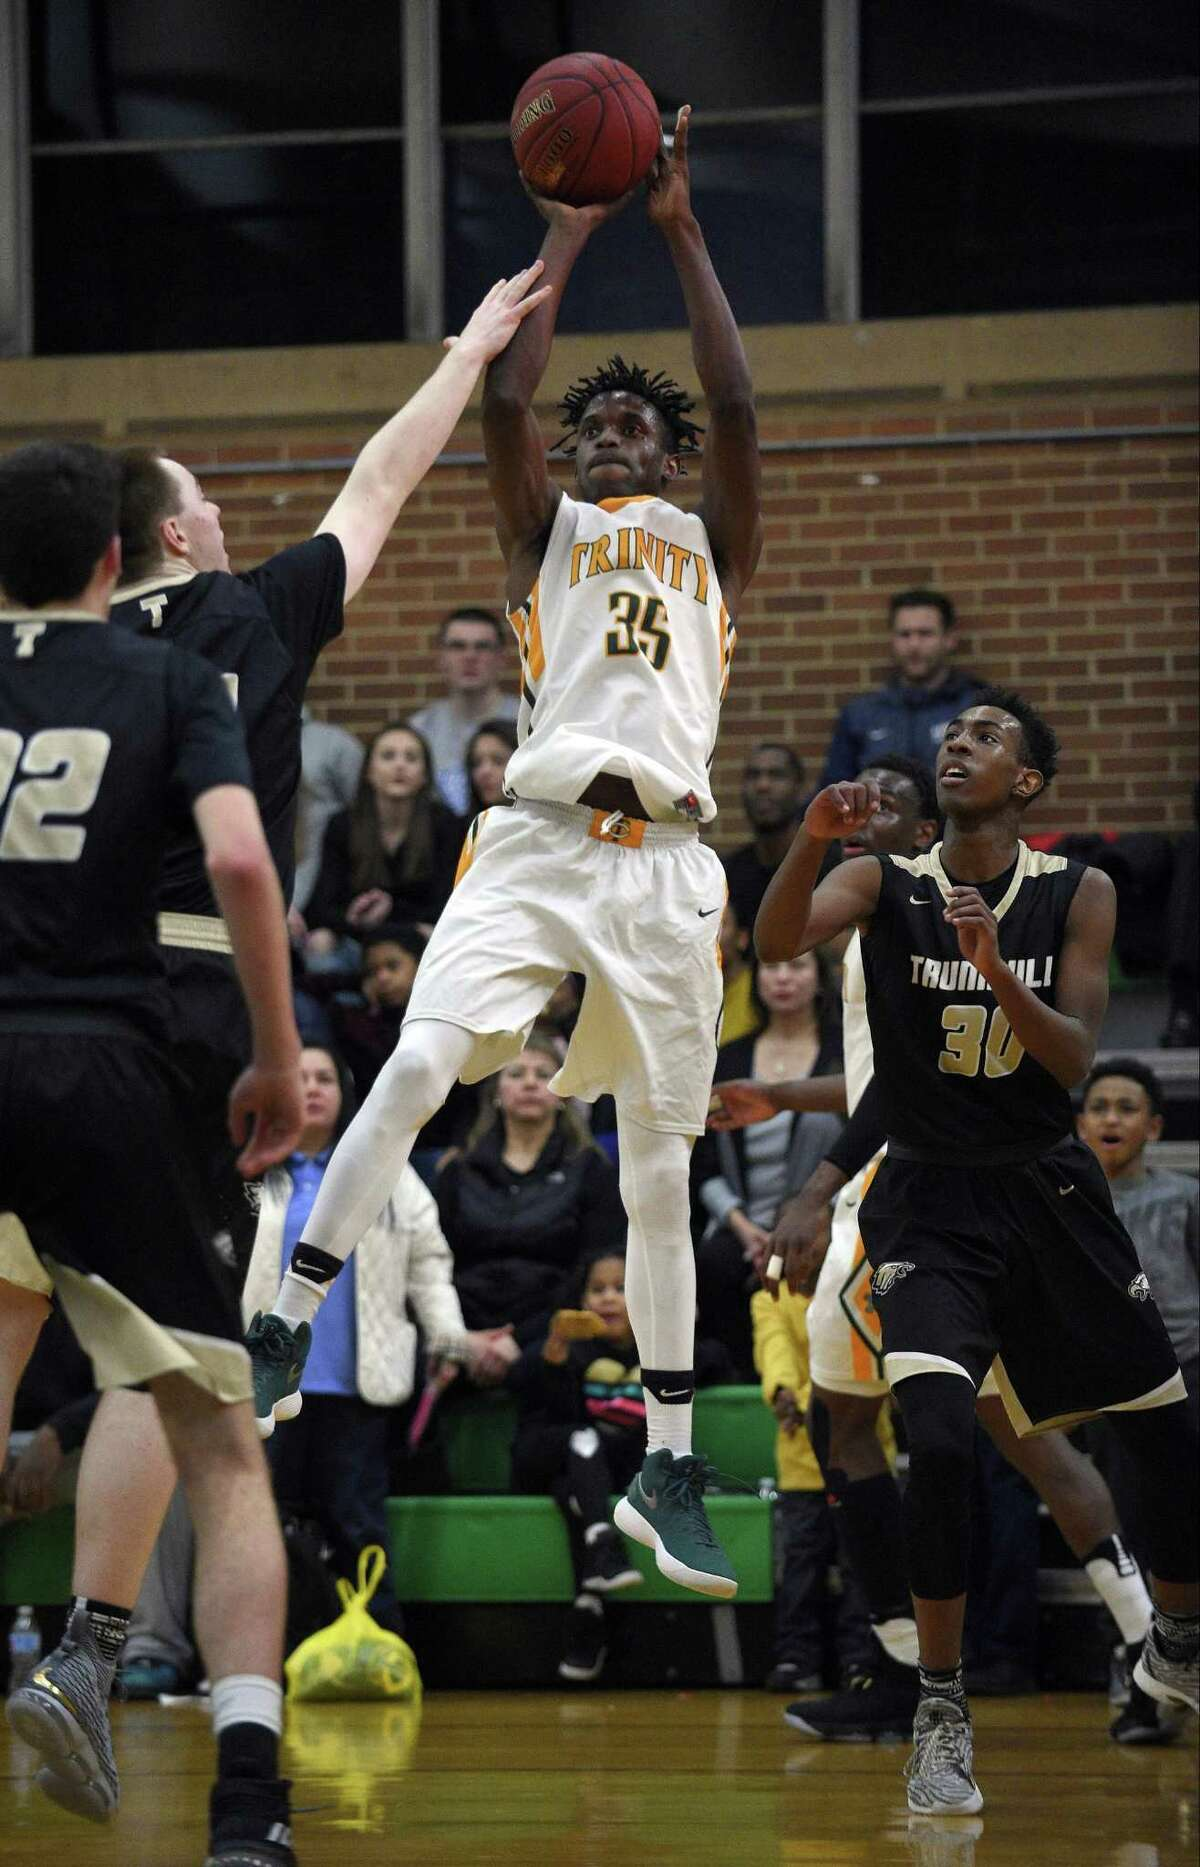 Trinity Catholic's Dimitry Moise (35) puts up a shot during an FCIAC Boys Basketball game against Trumbull at Trinity Catholic High School on Wednesday, Feb. 14, 2018 in Stamford, Connecticut. Moise and fellow teammate Contavio Dutreil both scored their 1,000th game point of their high school careers.